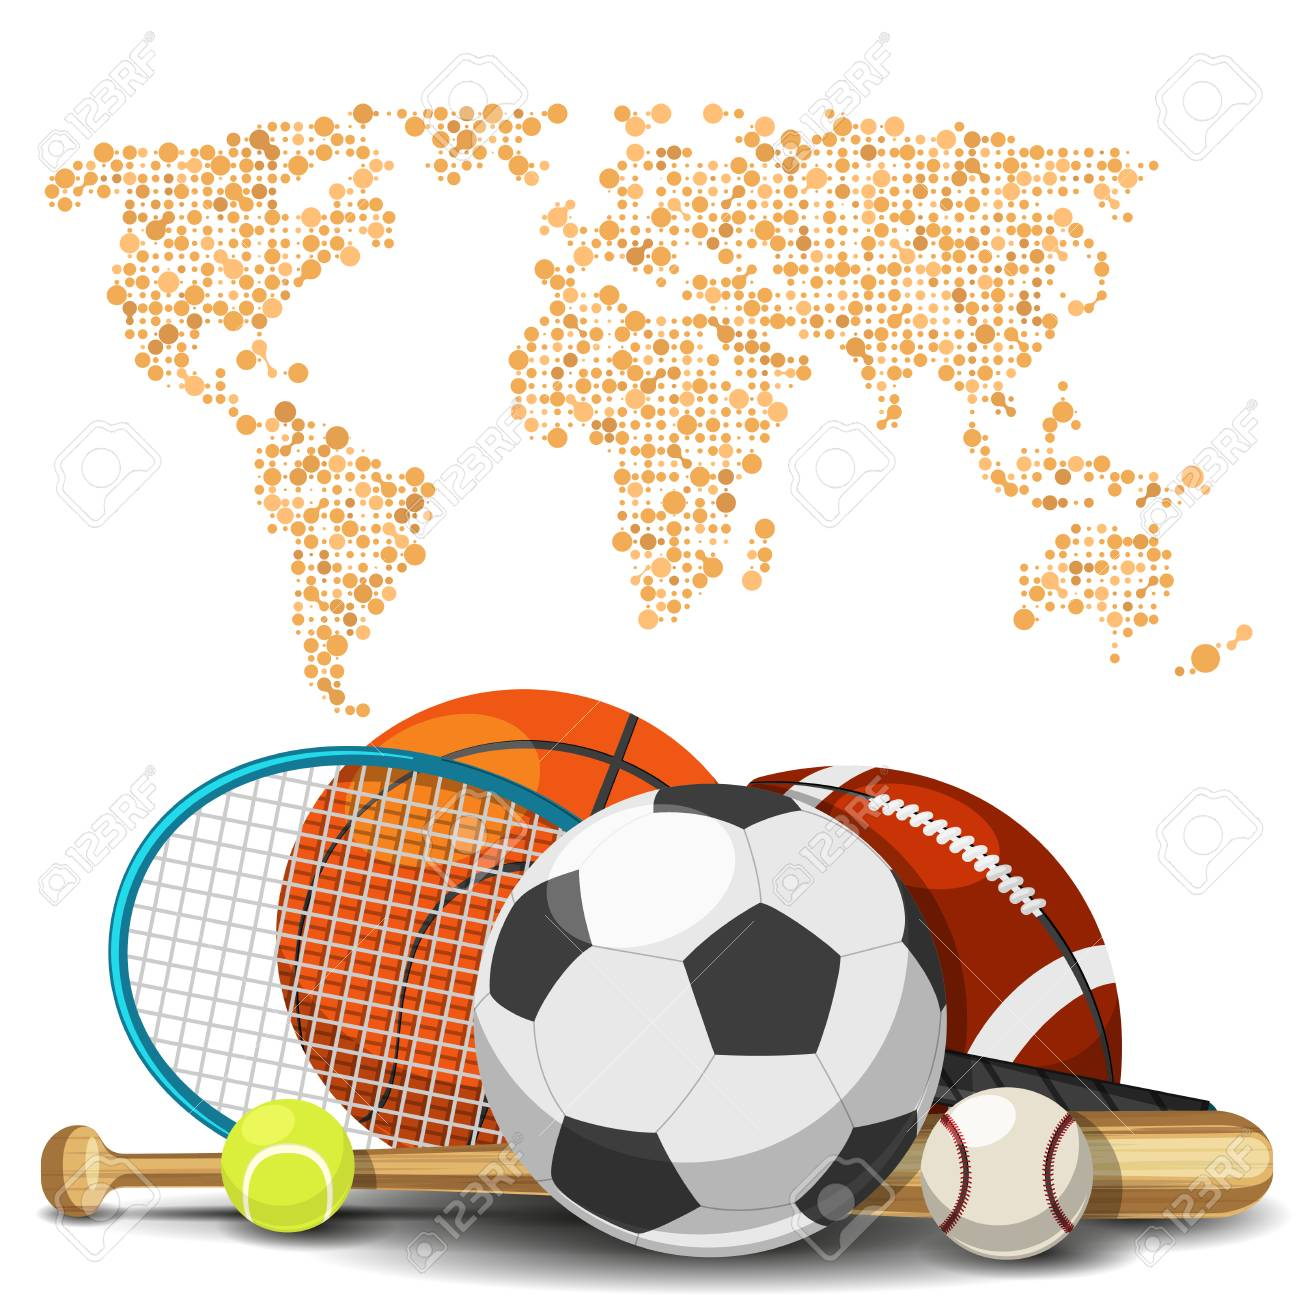 World sport deportes concept sports equipment with map background vector world sport deportes concept sports equipment with map background sport basketball and tennis football and baseball illustration gumiabroncs Images